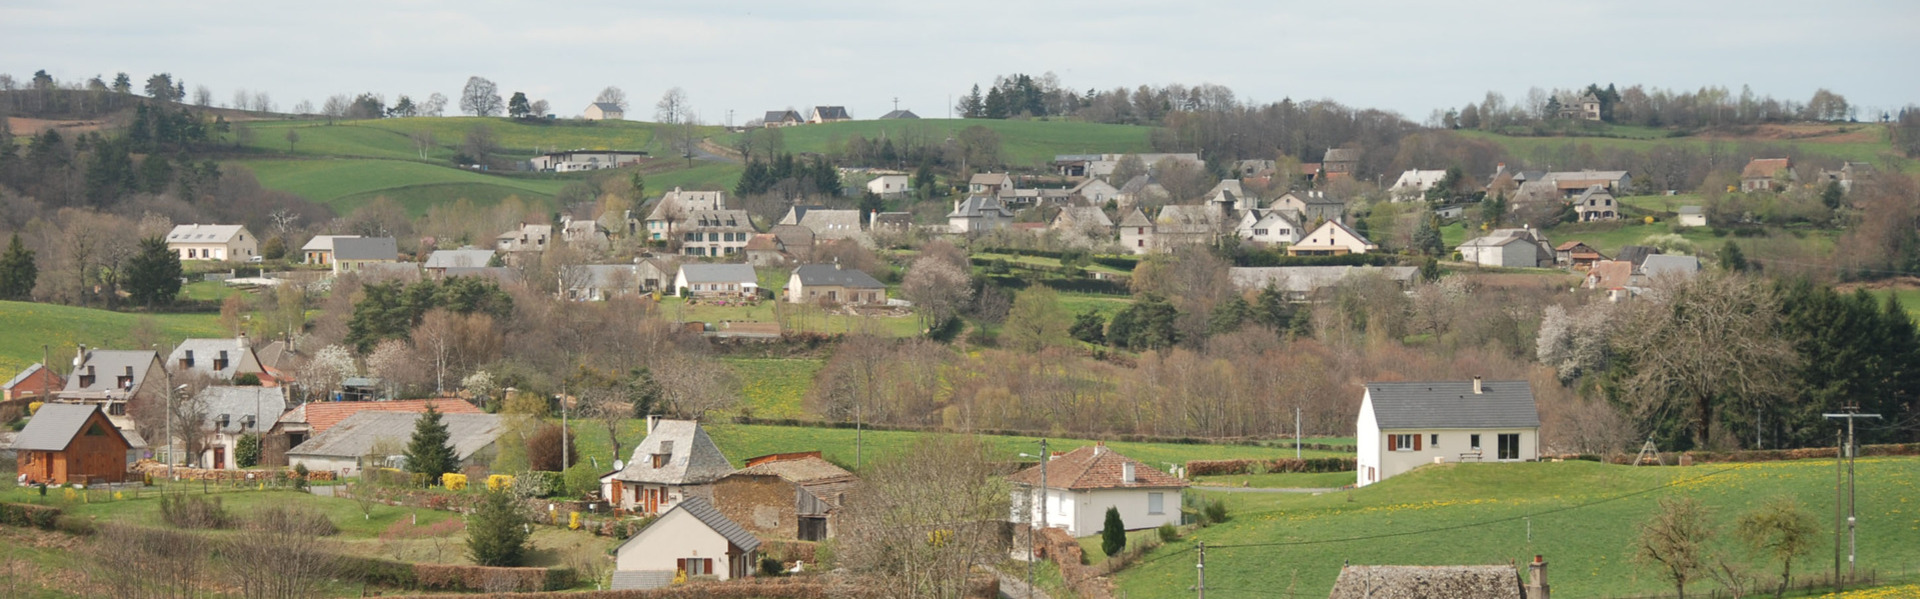 Teissieres ala campagne dans le Cantal